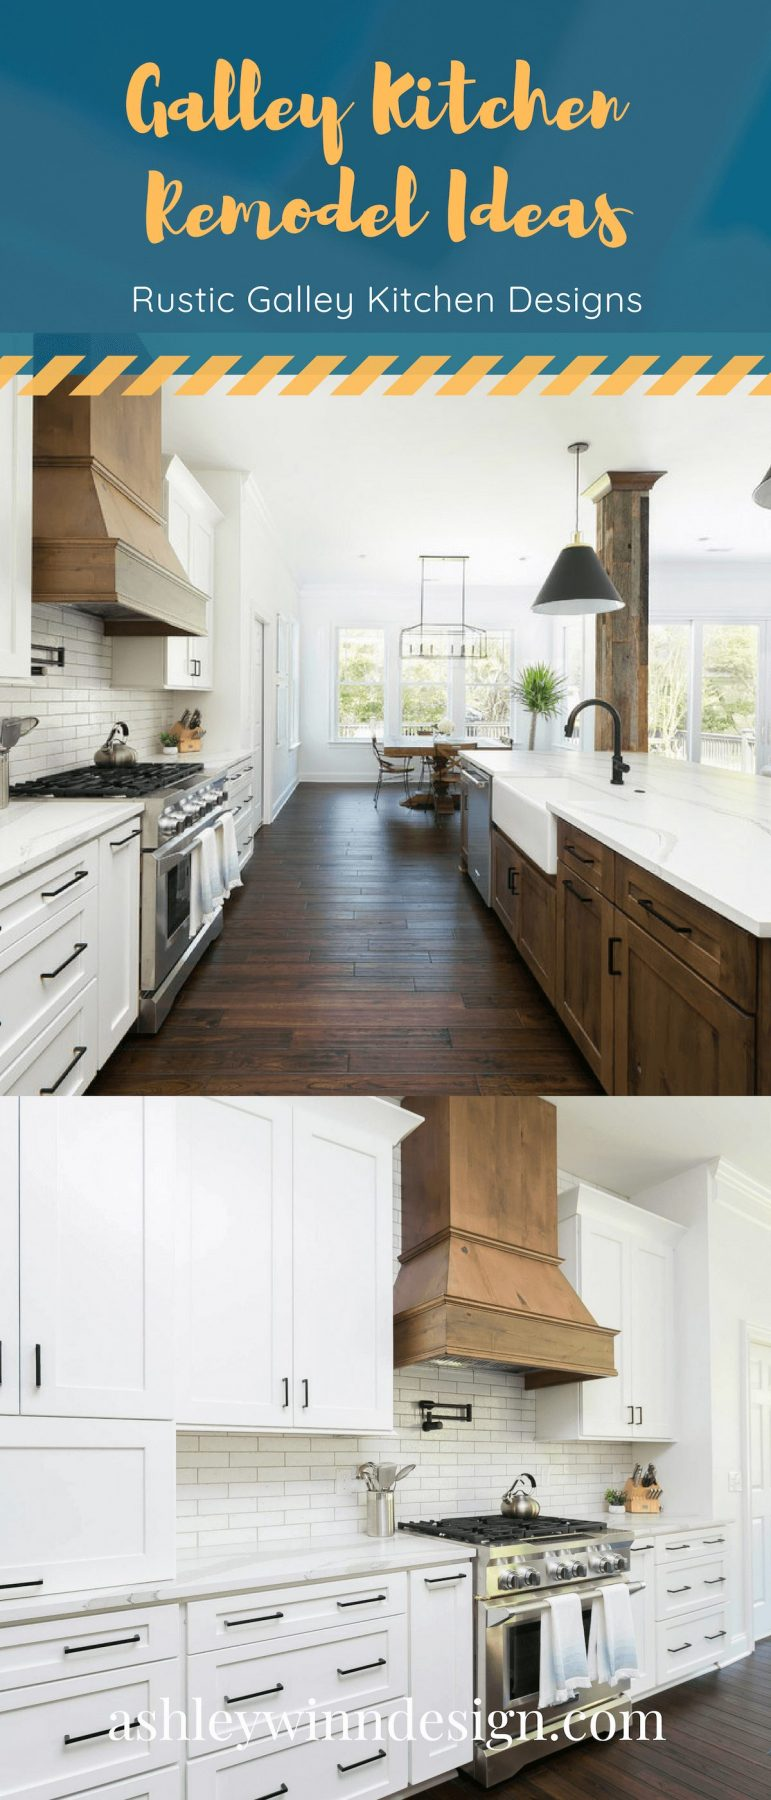 29 Awesome Galley Kitchen Remodel Ideas Design Inspiration